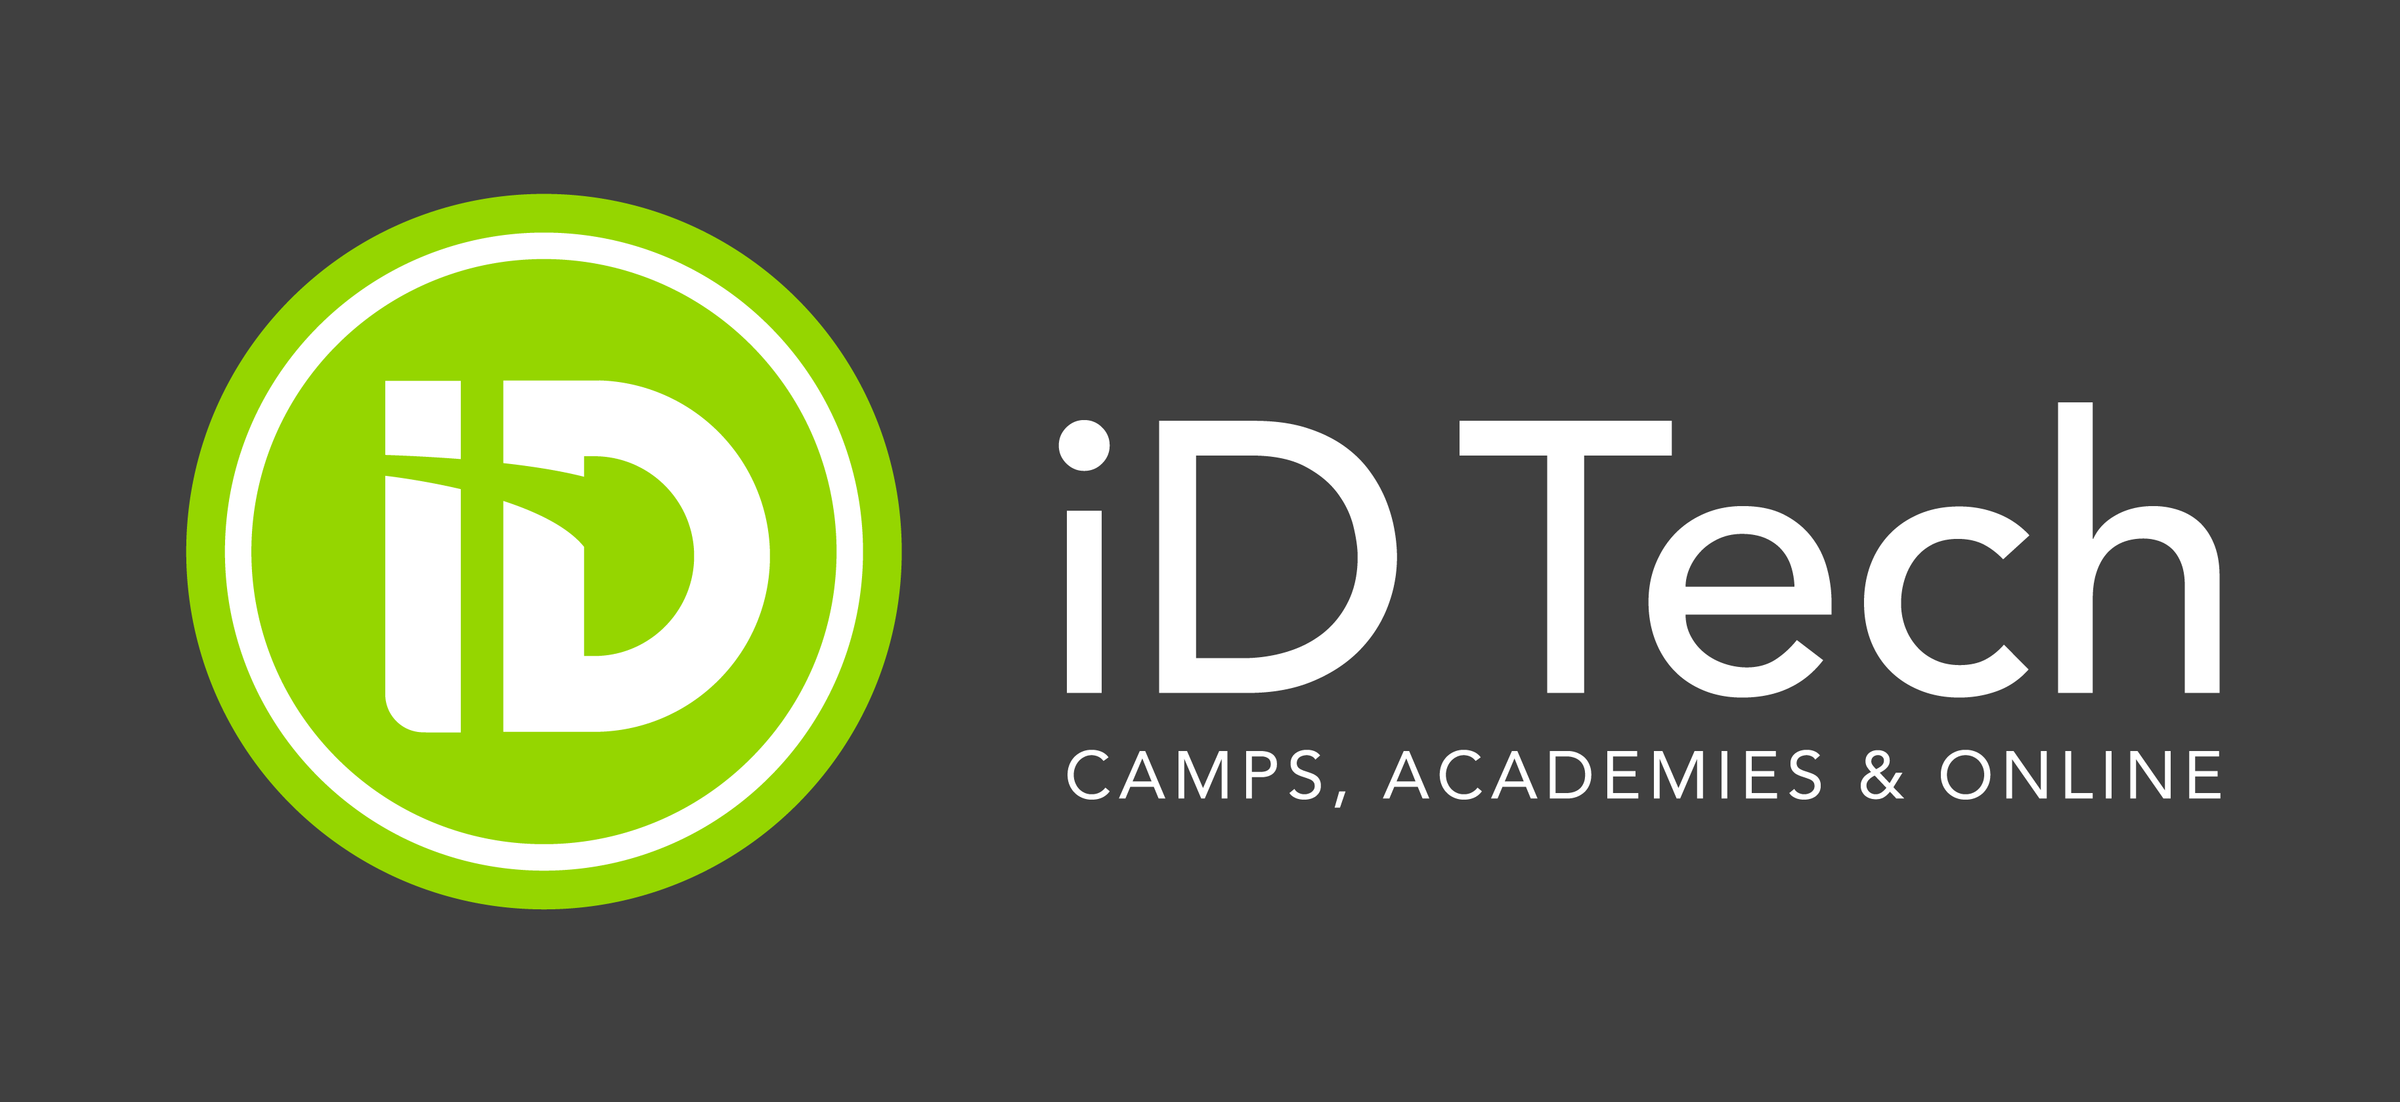 iD Tech Camps: #1 in STEM Education - Held at University of Virginia